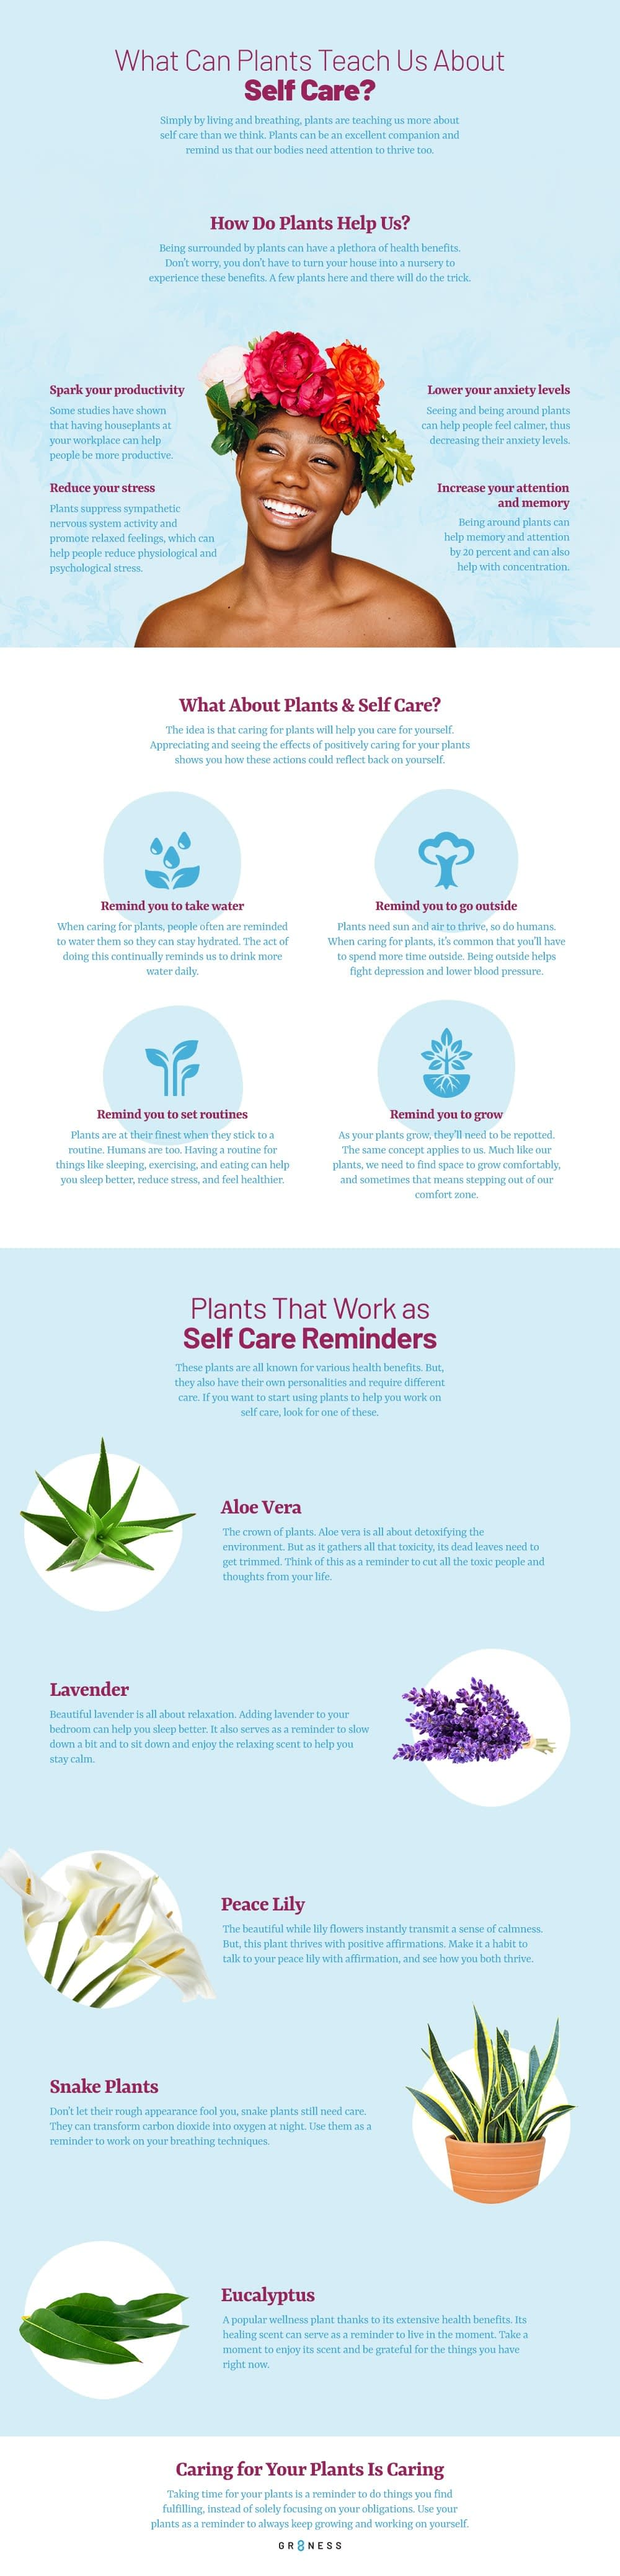 self care ideas from plants